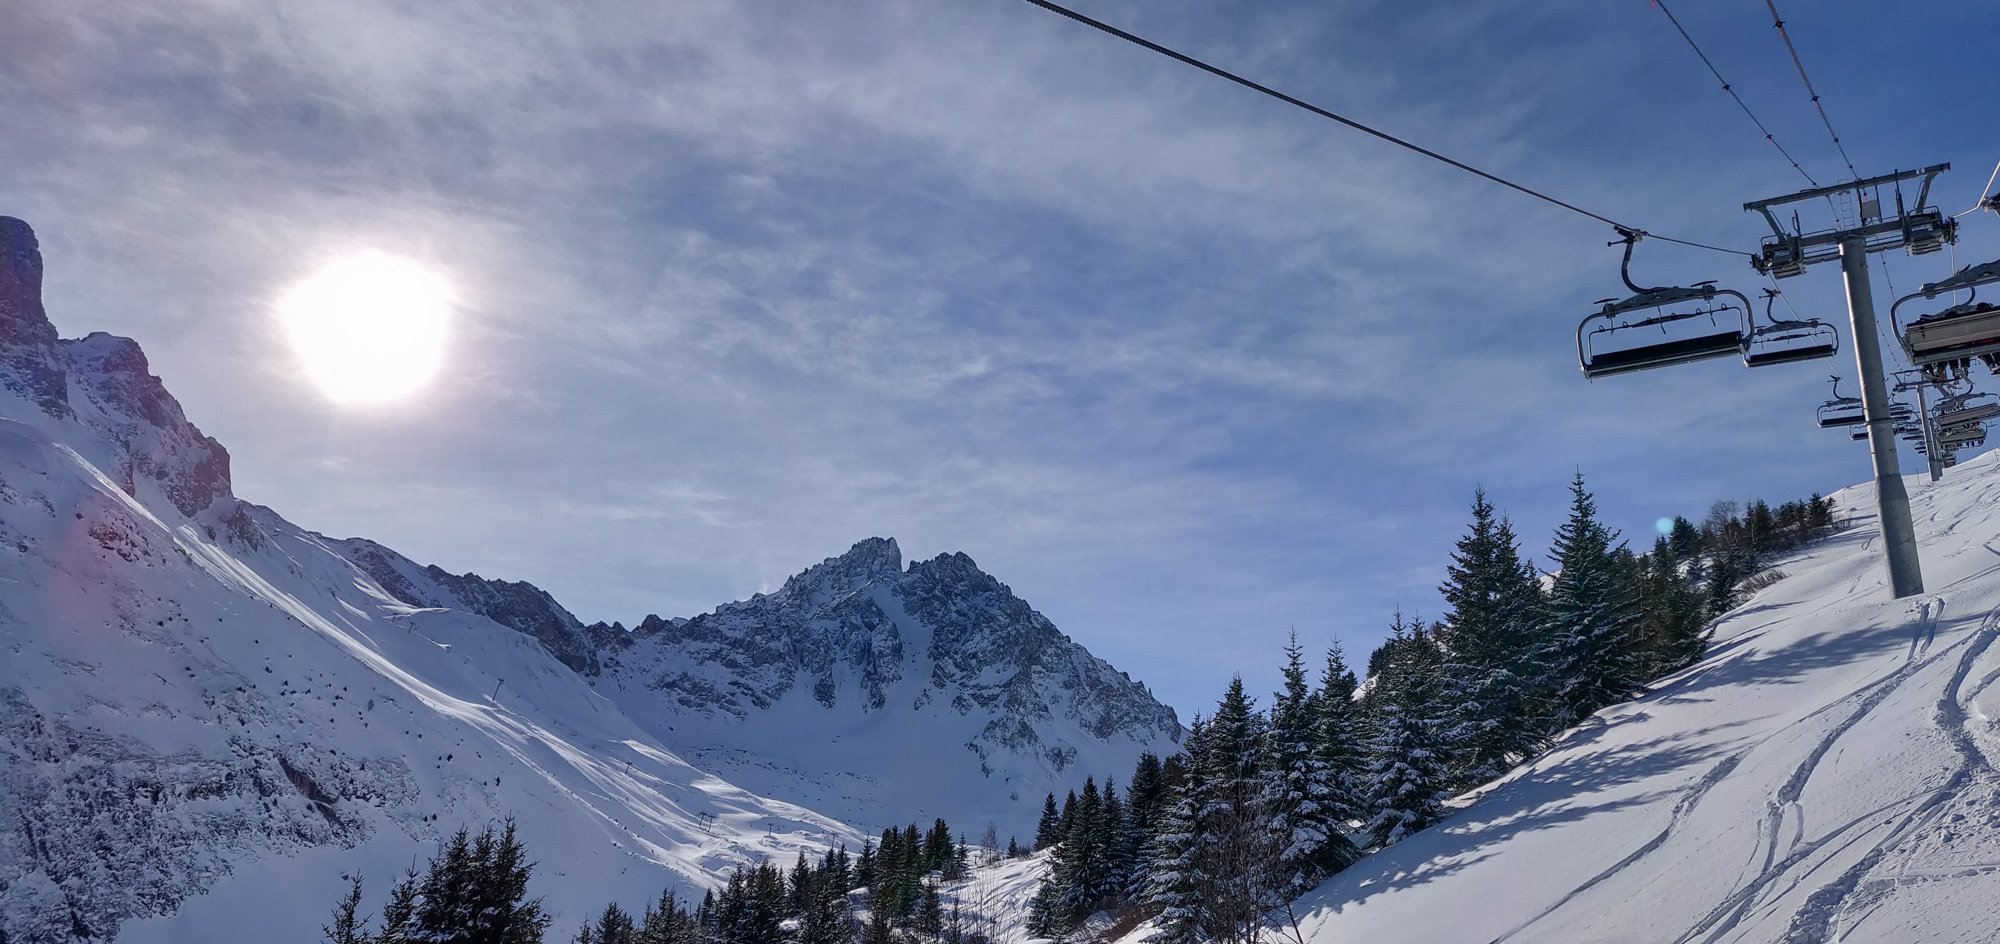 Skiing in Courchevel, 3 Valleys